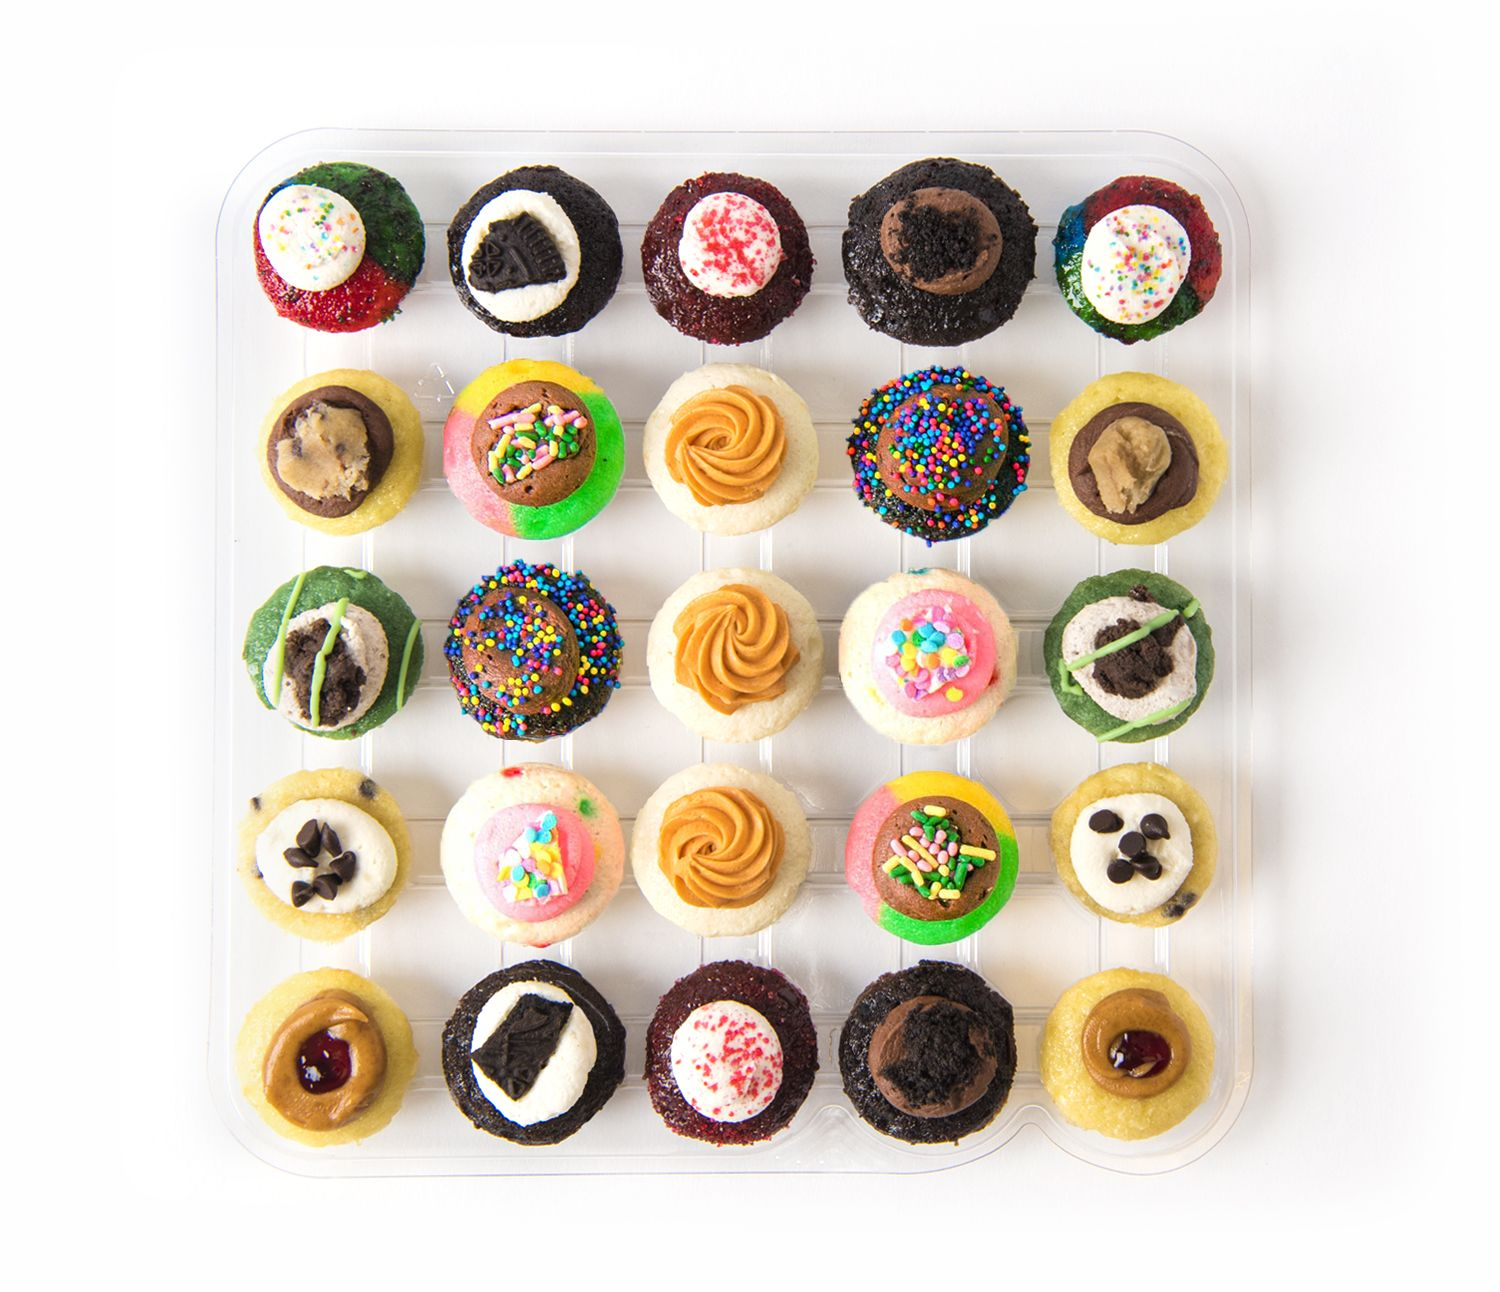 Delicious Bite Size Cupcakes And Cupcake Delivery Baked By